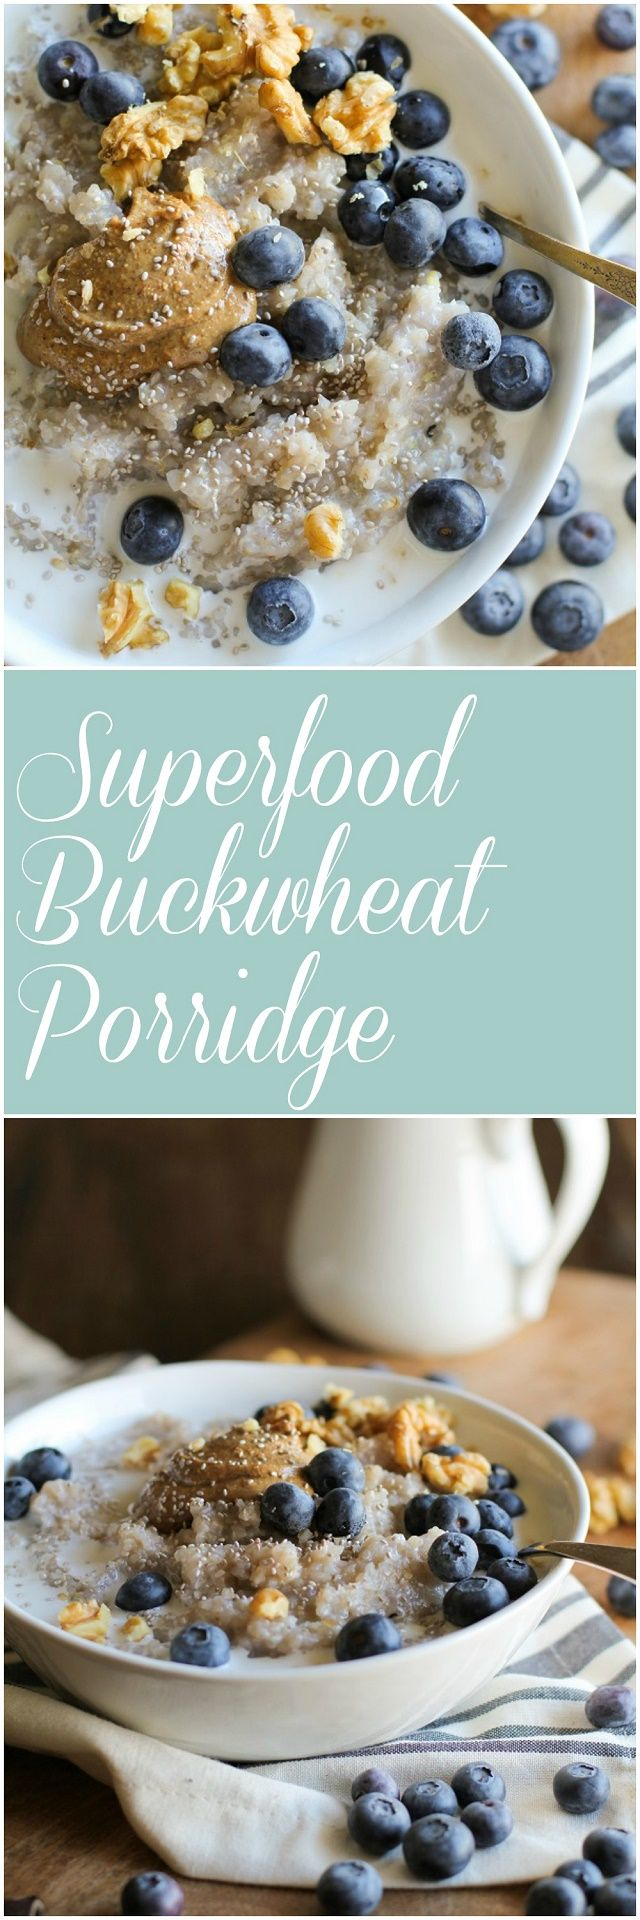 Superfood Blueberry Buckwheat Porridge with coconut milk, almond butter, chia seeds, walnuts, and pure maple syrup |